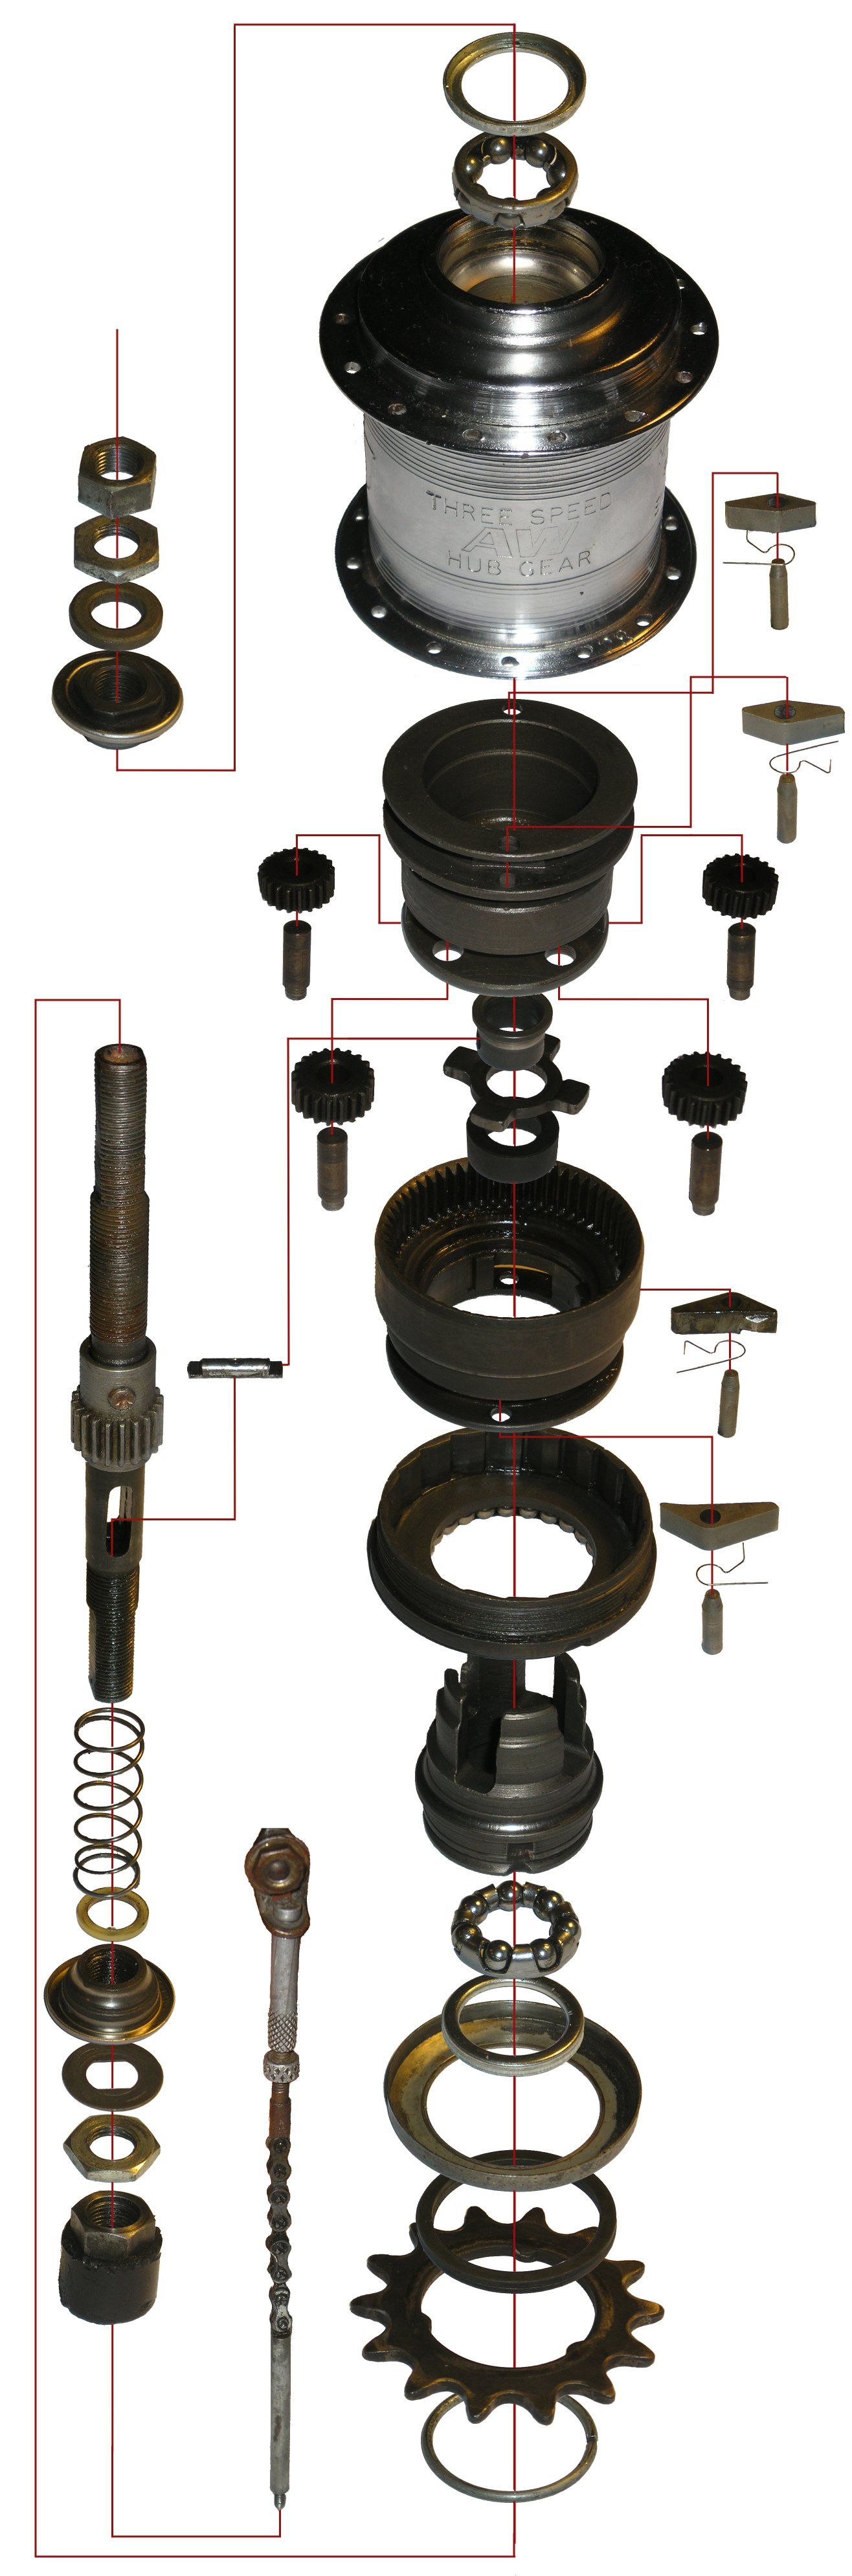 Bicycle Rear Hub Exploded View : Bicycle hub diagram free engine image for user